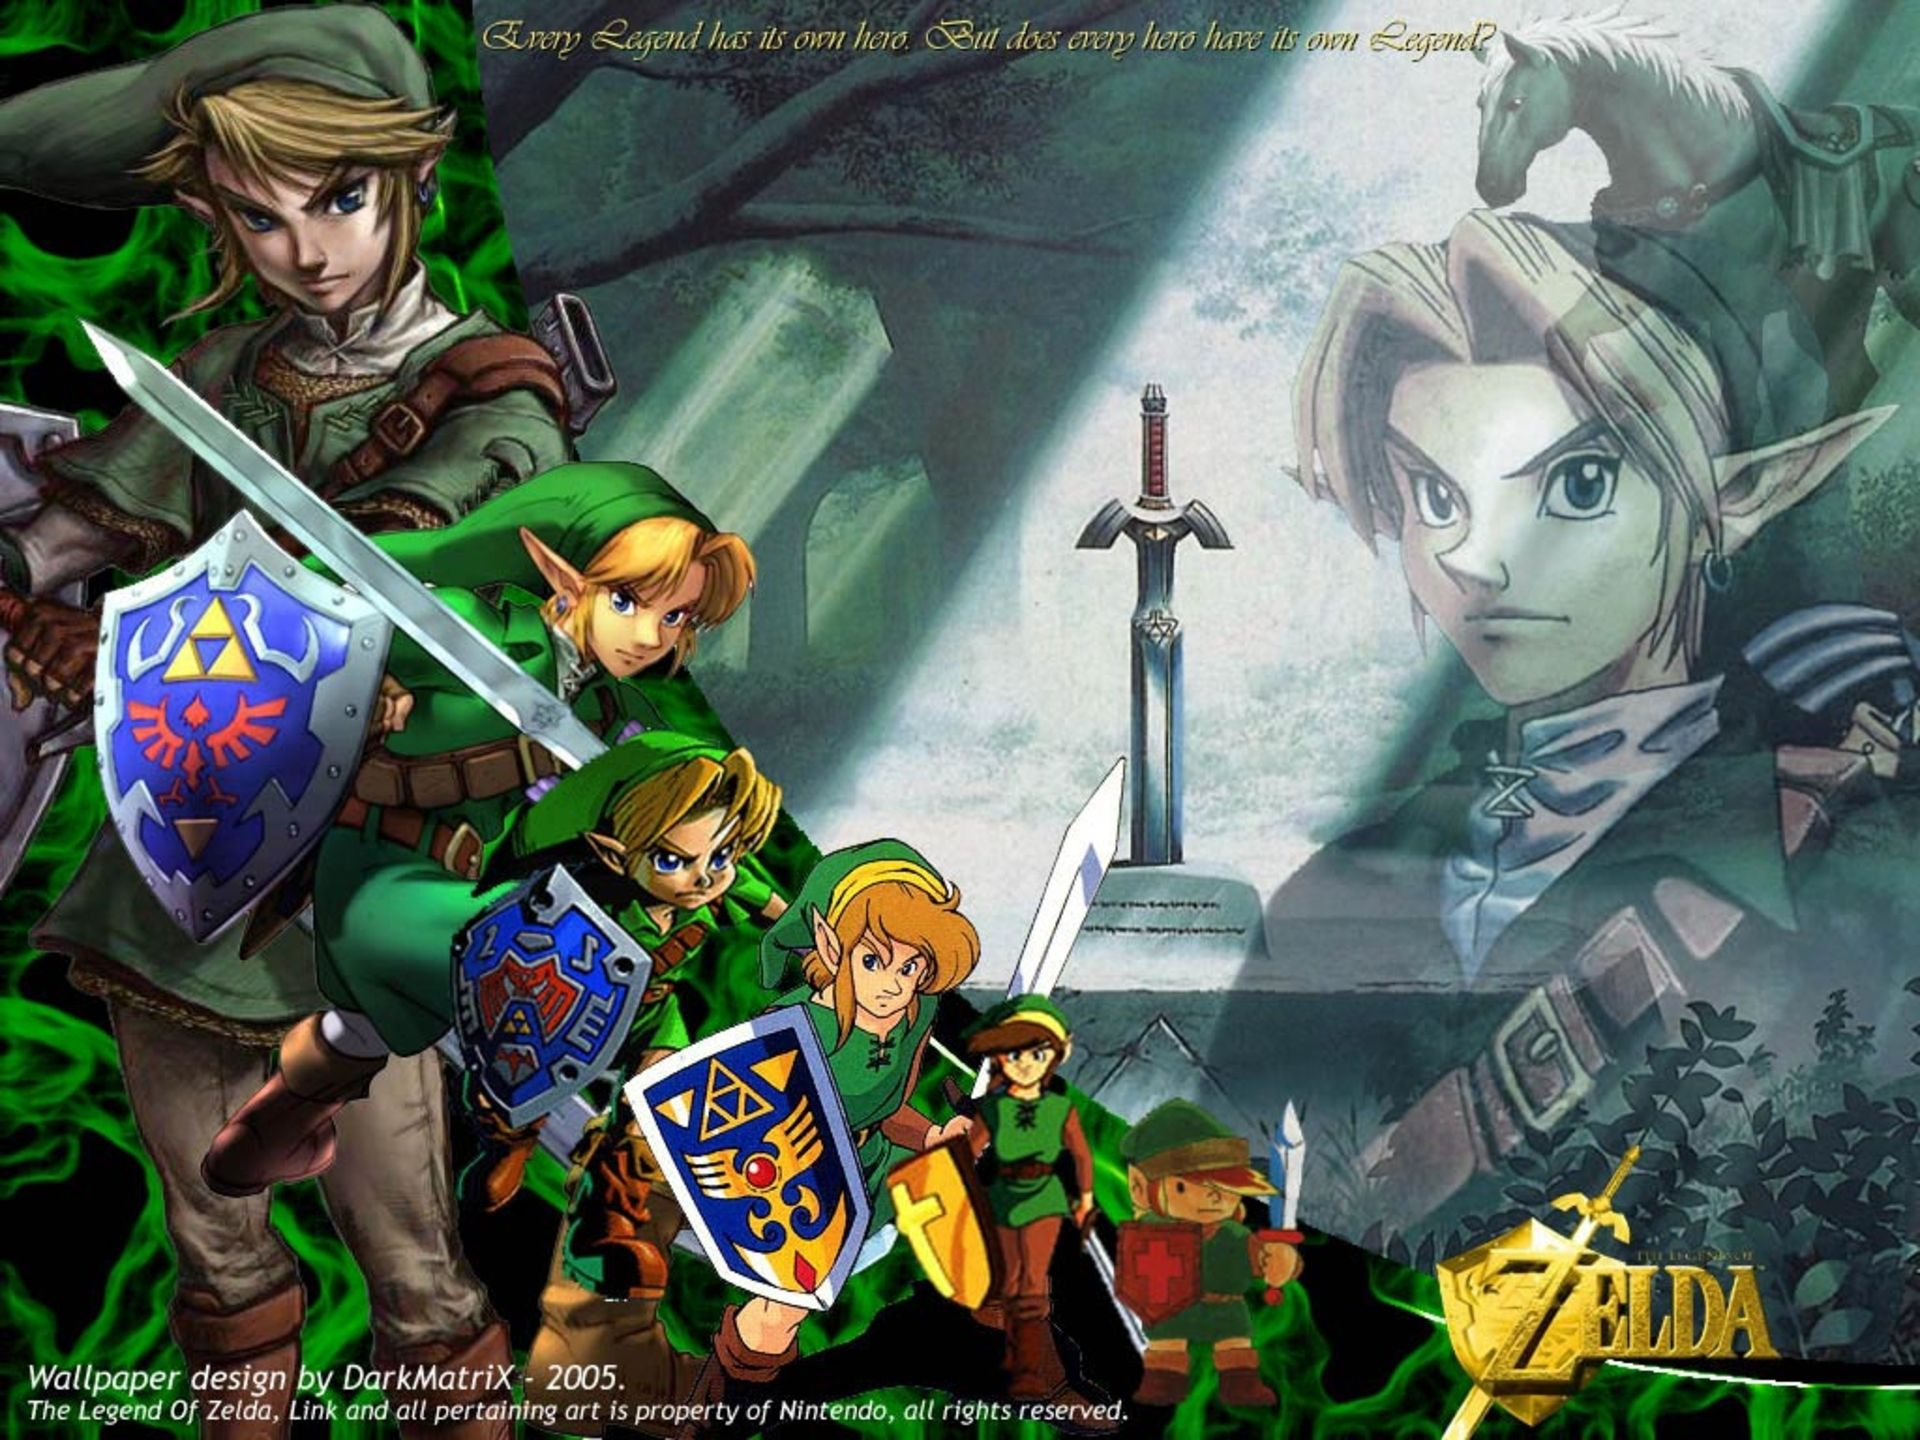 The Legend Of Zelda: A Link To The Past Wallpapers